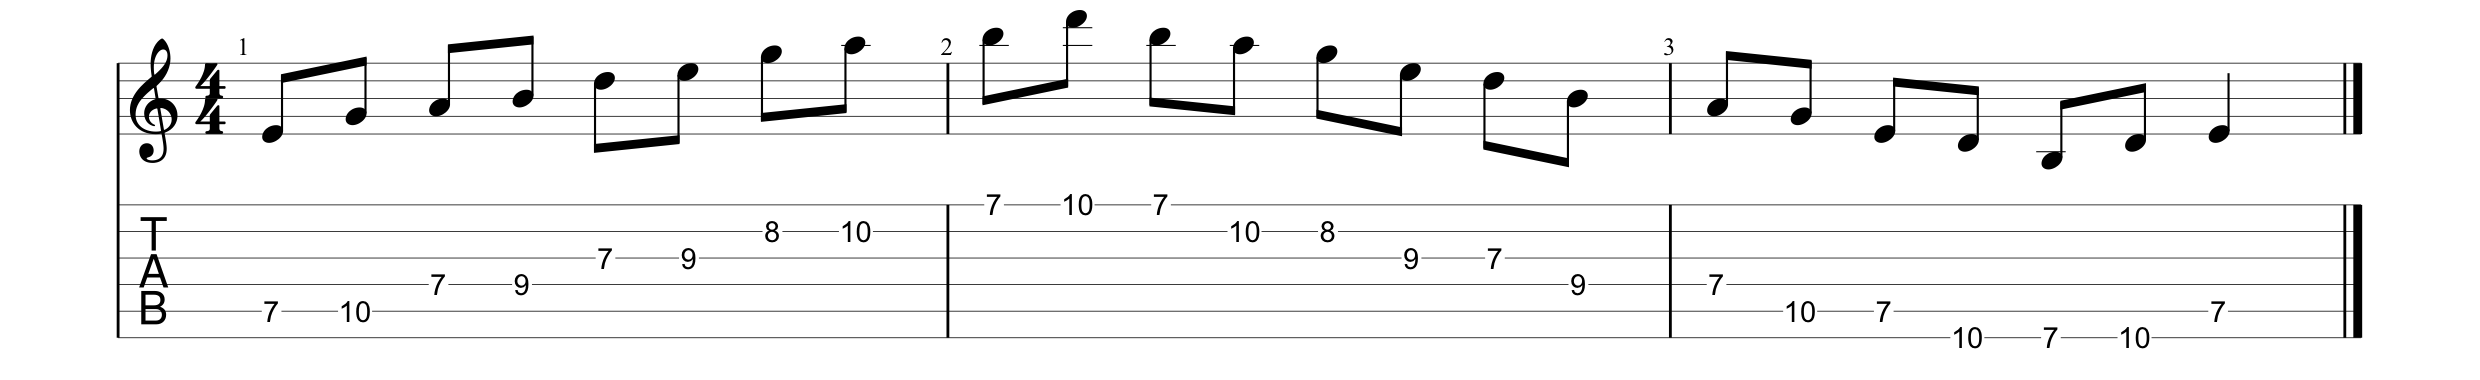 E minor pentatonic A Shape tab#1.png